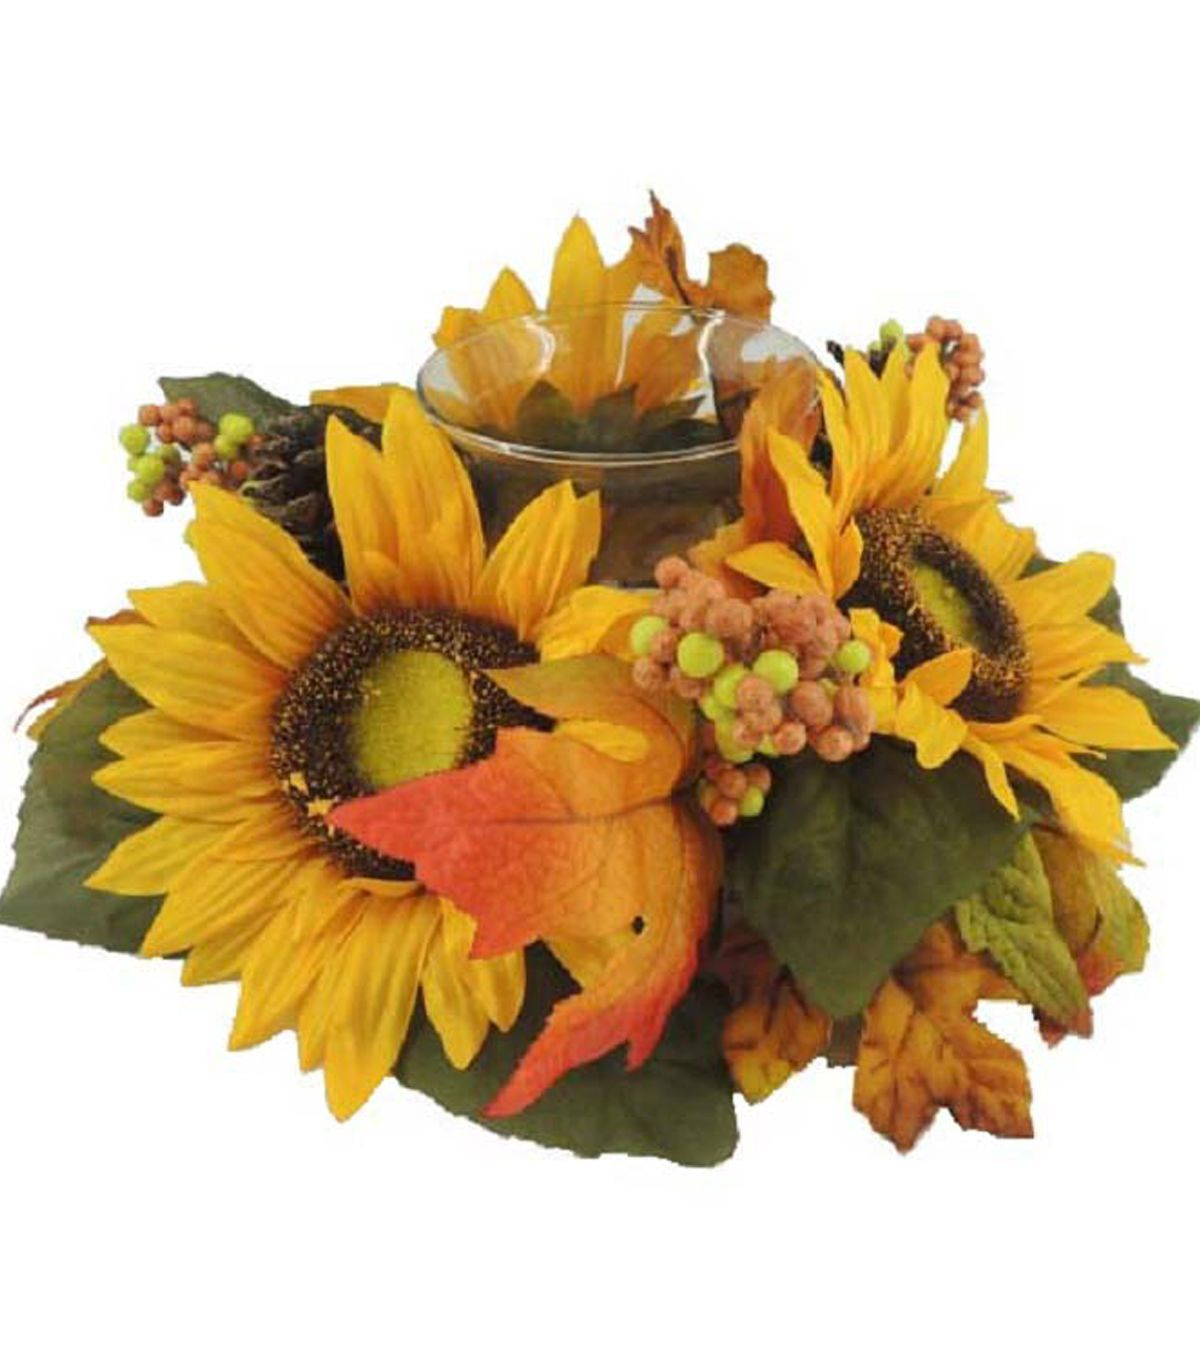 Blooming autumn uu sunflower u berries candle holder yellow